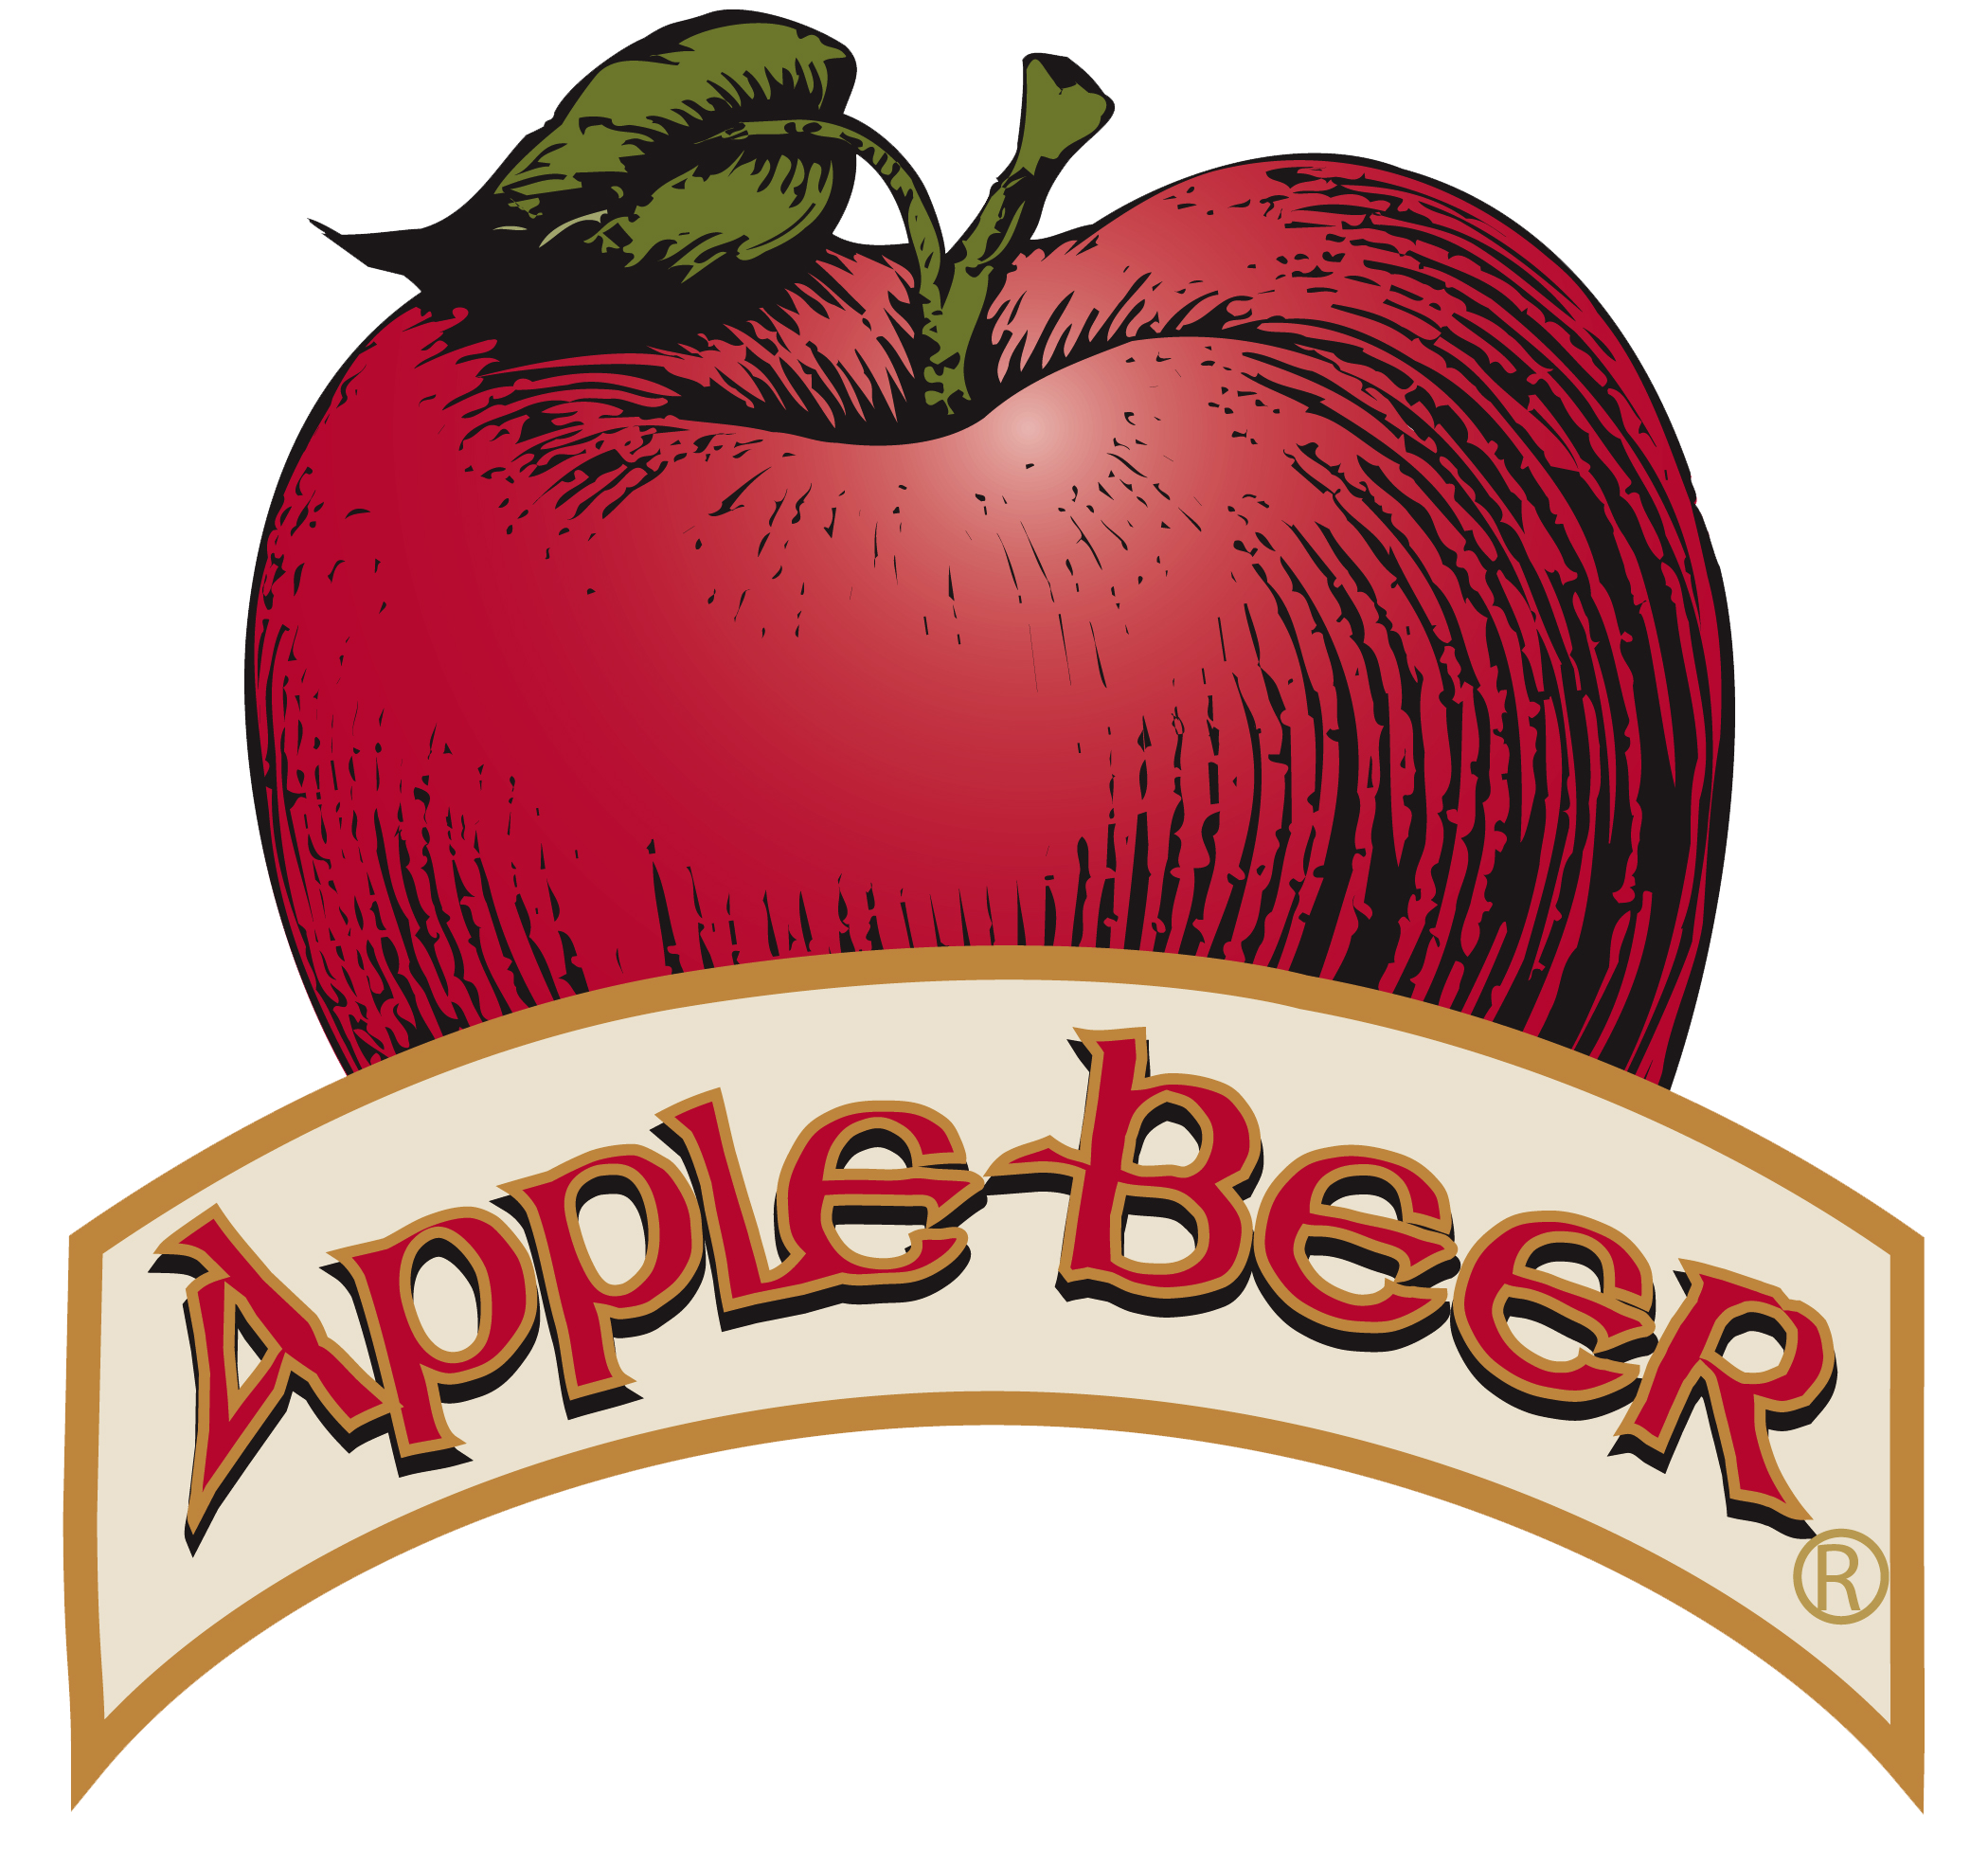 Free clipart apple beer graphic freeuse download Apple Beer | Utah's Own graphic freeuse download